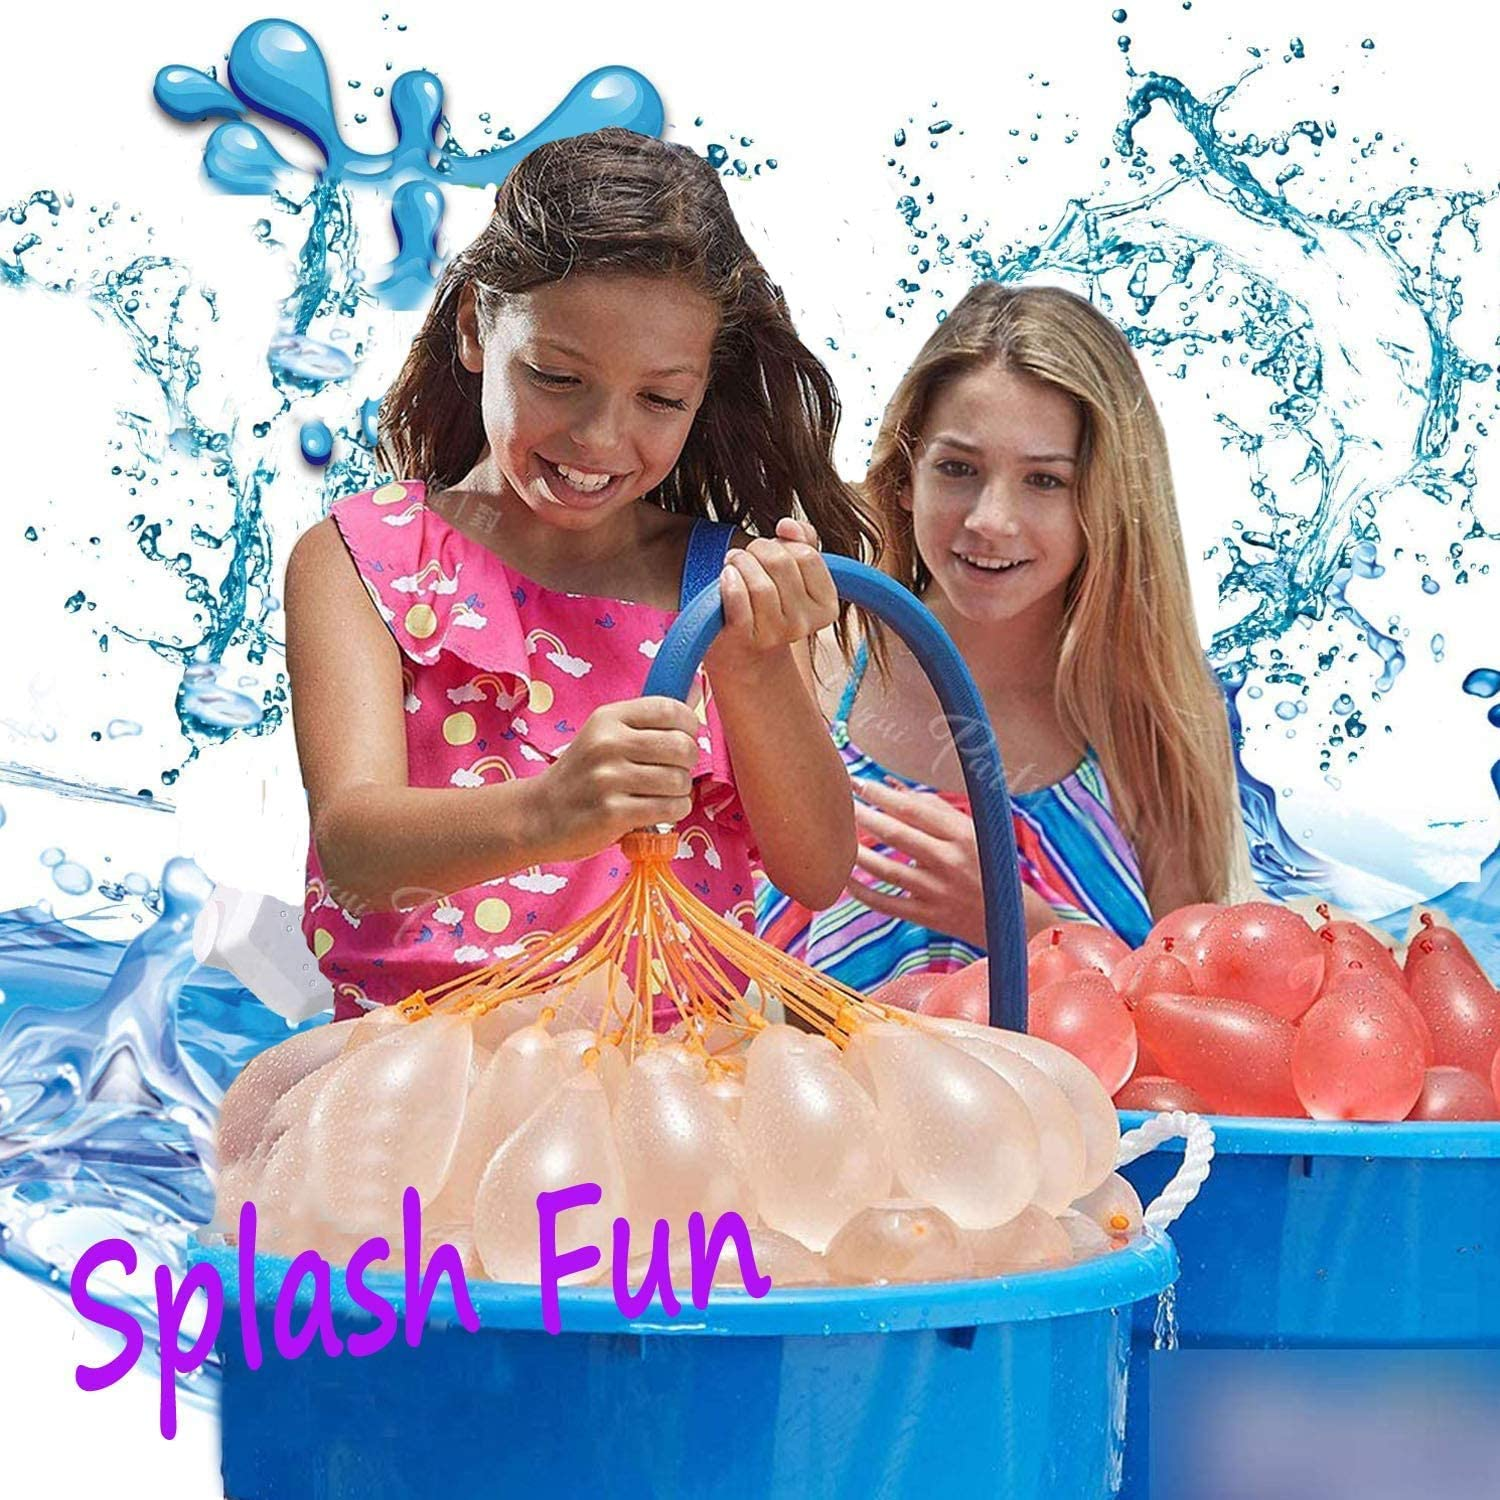 SDFLAYER Water Balloons for Kids Girls Boys Balloons Set Party Games Quick Fill 592 Balloons 16 Bunches for Swimming Pool Outdoor Summer Fun IOPH